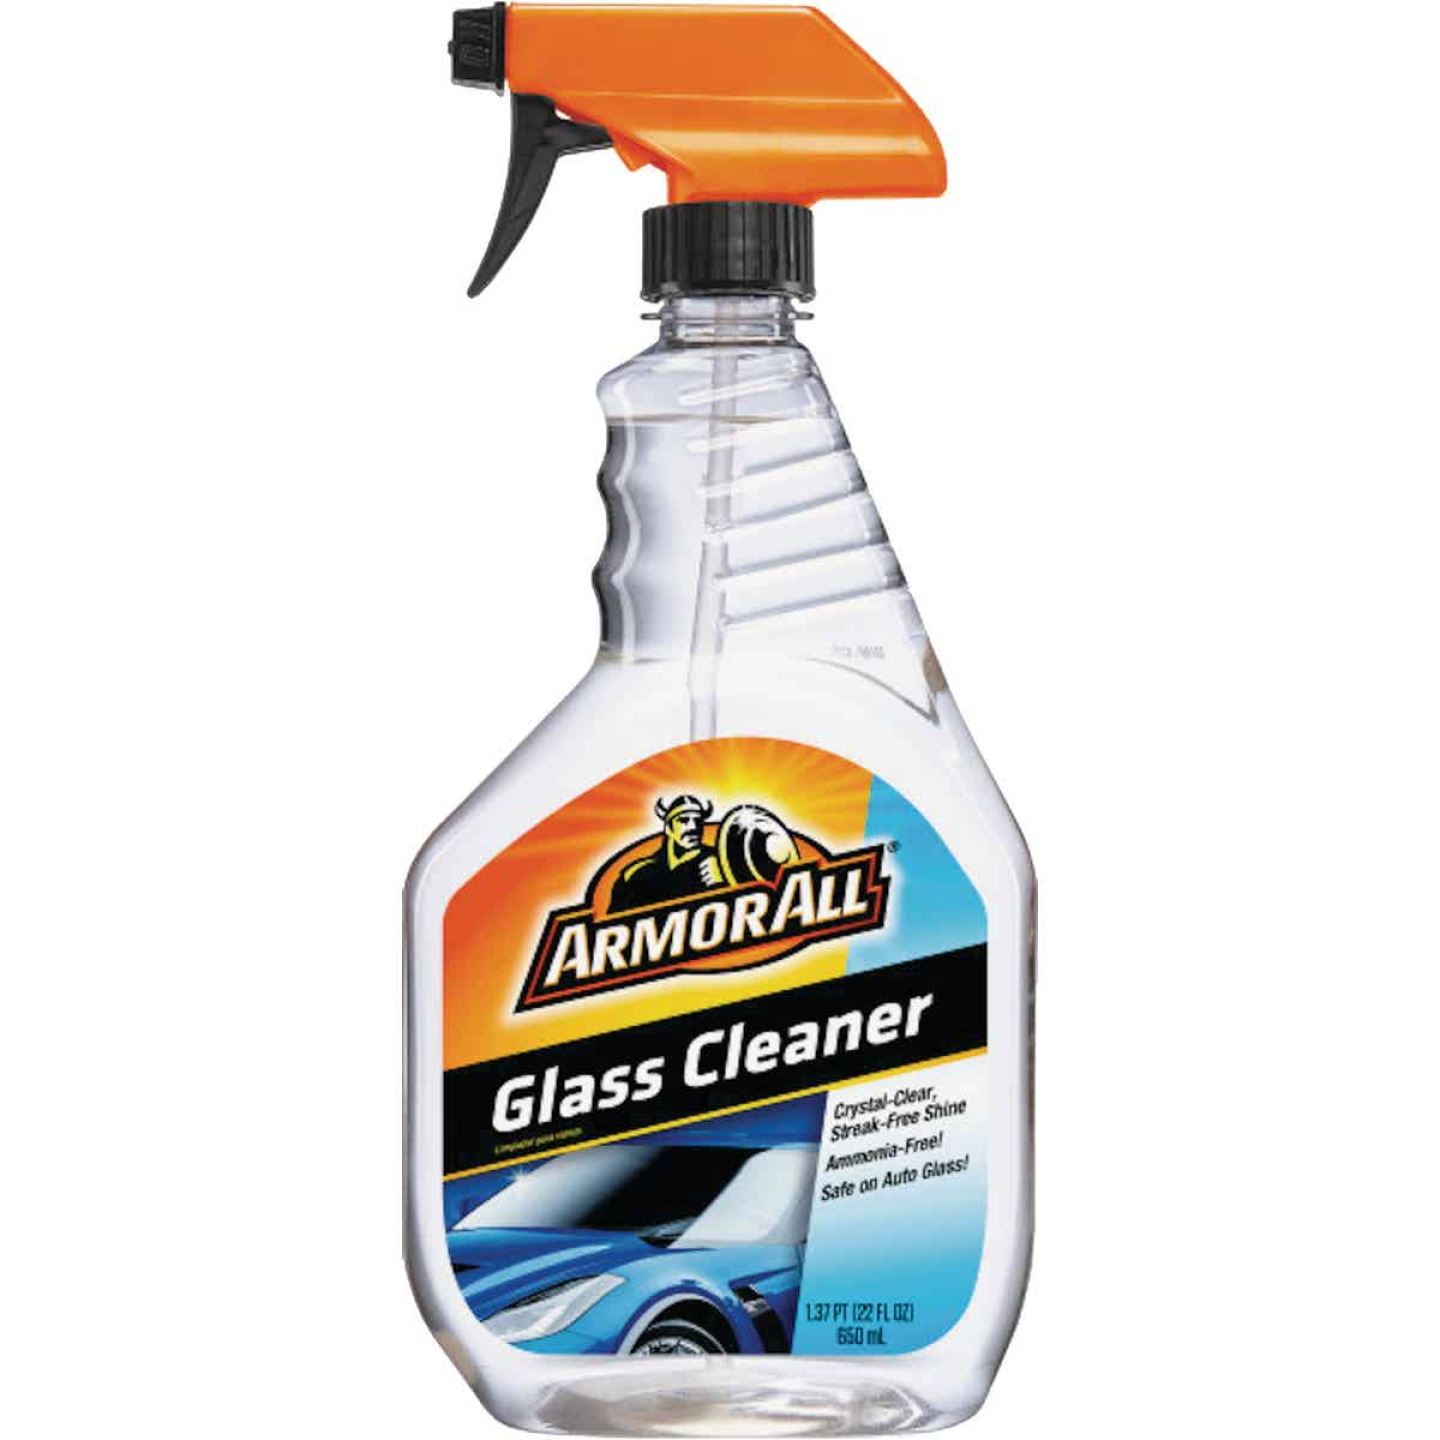 Armor All 22 Oz. Trigger Spay Automotive Glass Cleaner Image 1